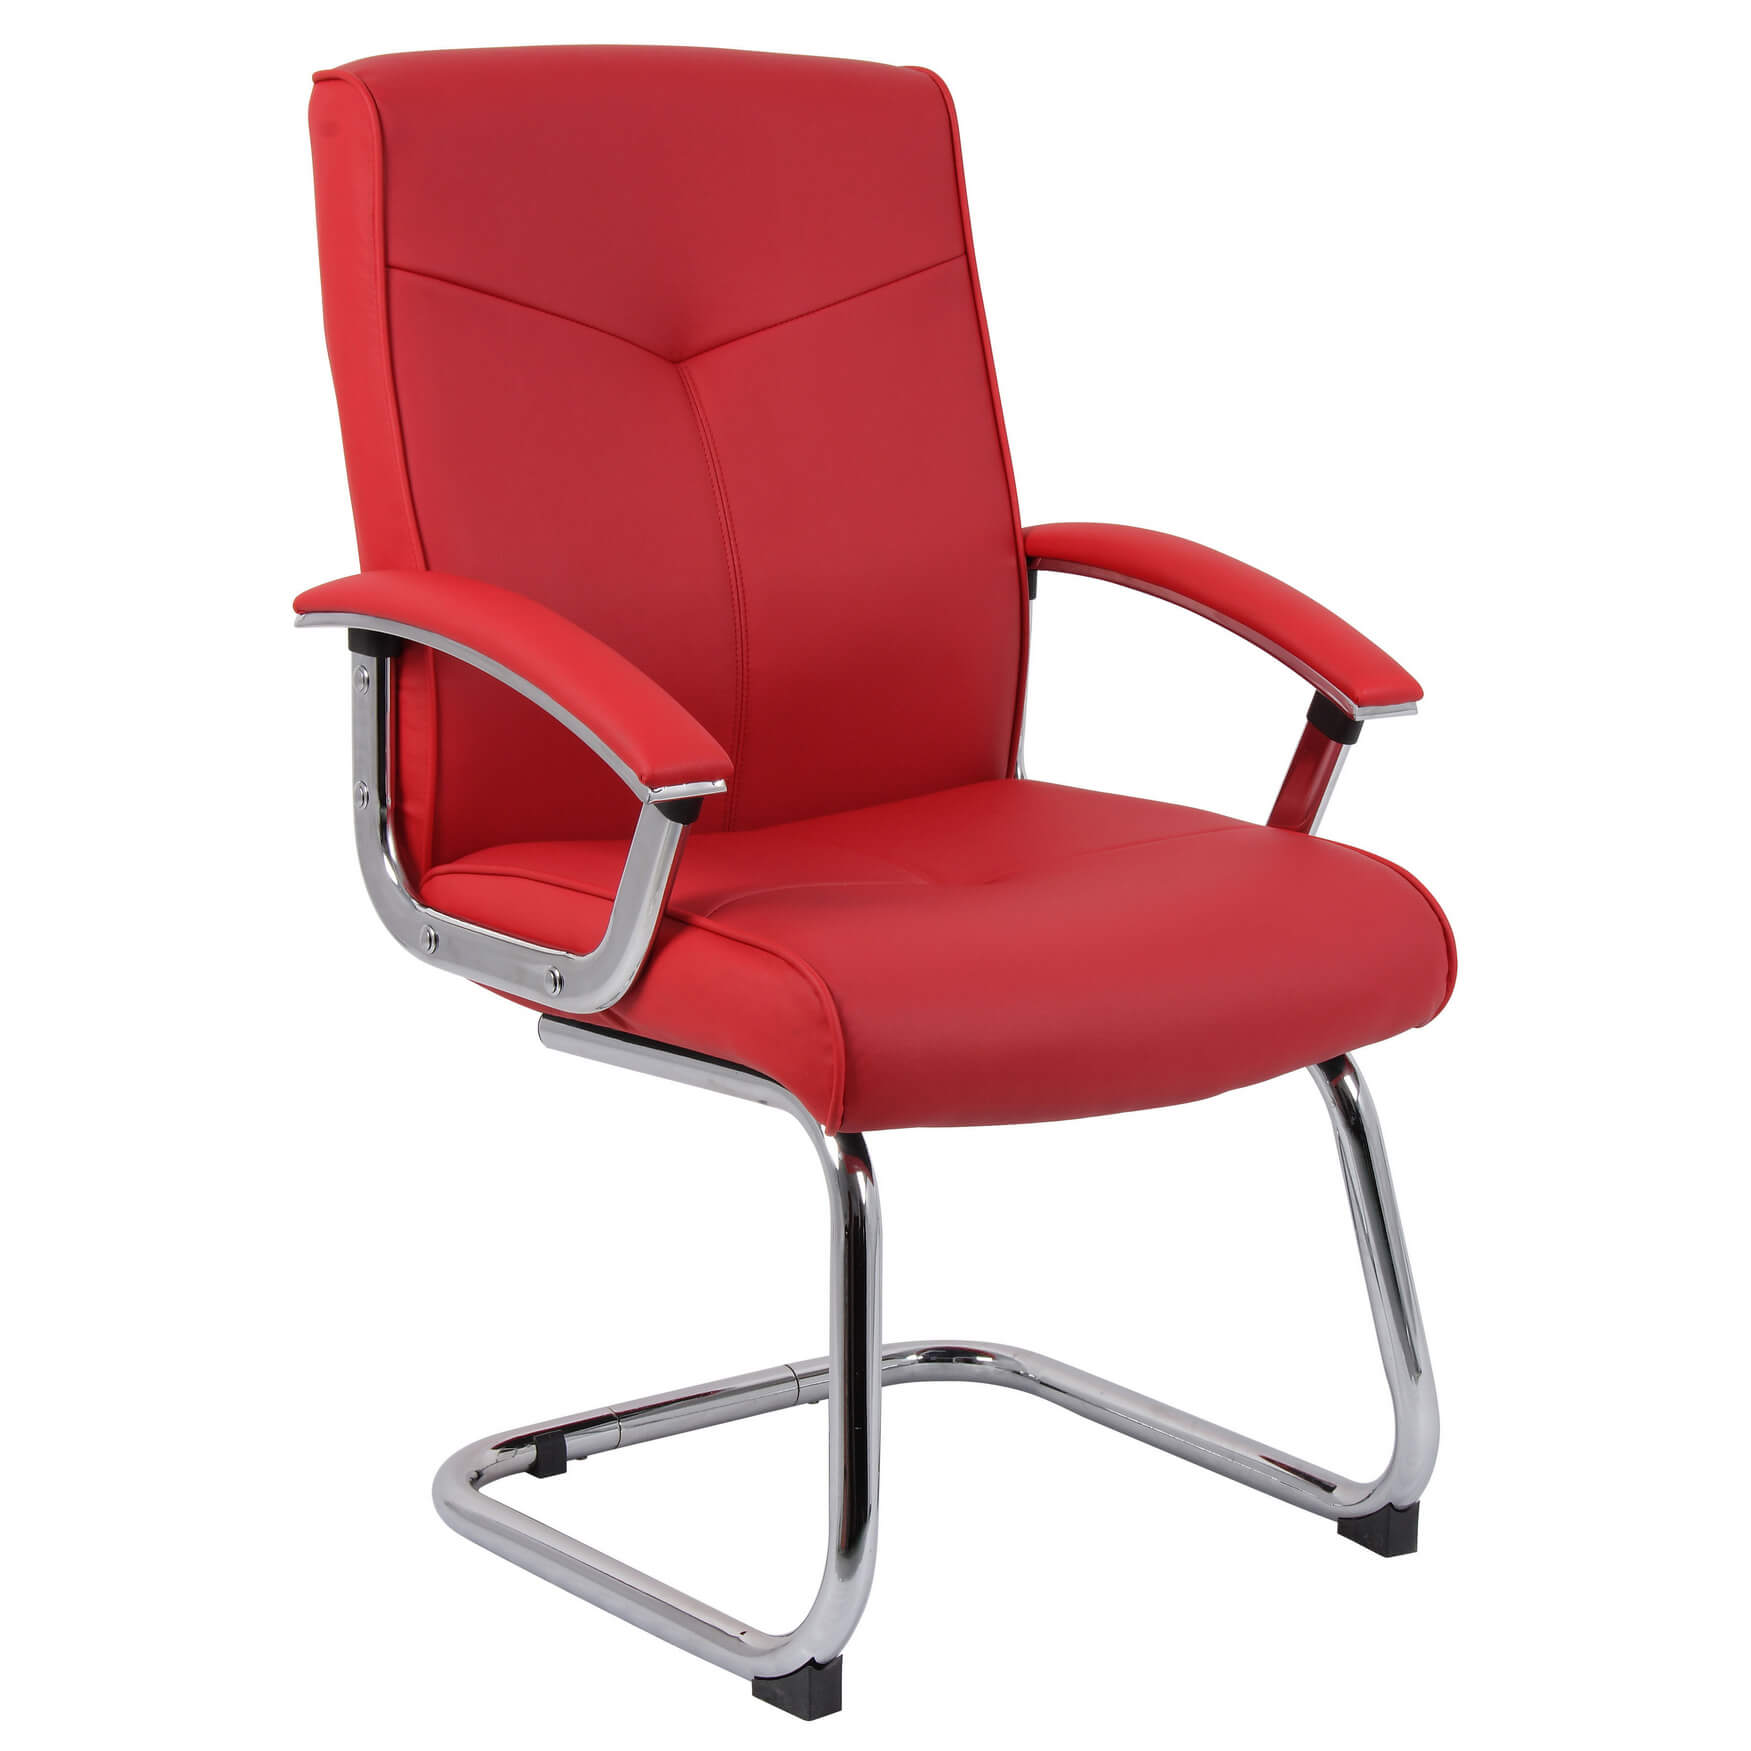 red office chairs. Red Office Chairs. Cannes Contemporary Chair Leather 1 Chairs